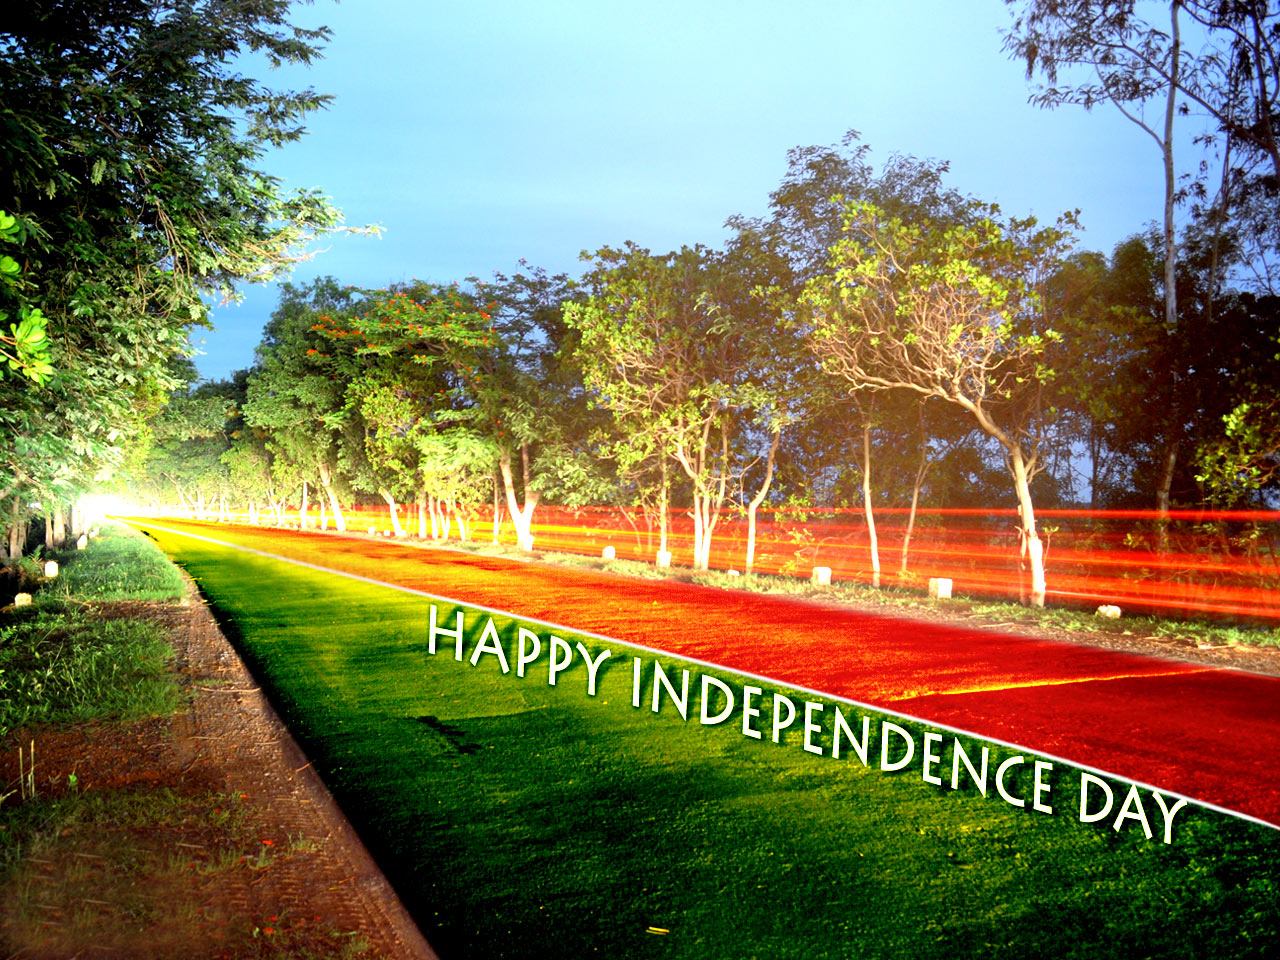 Hd Wallpapers 15 August Independence Day Of Indiaindia History